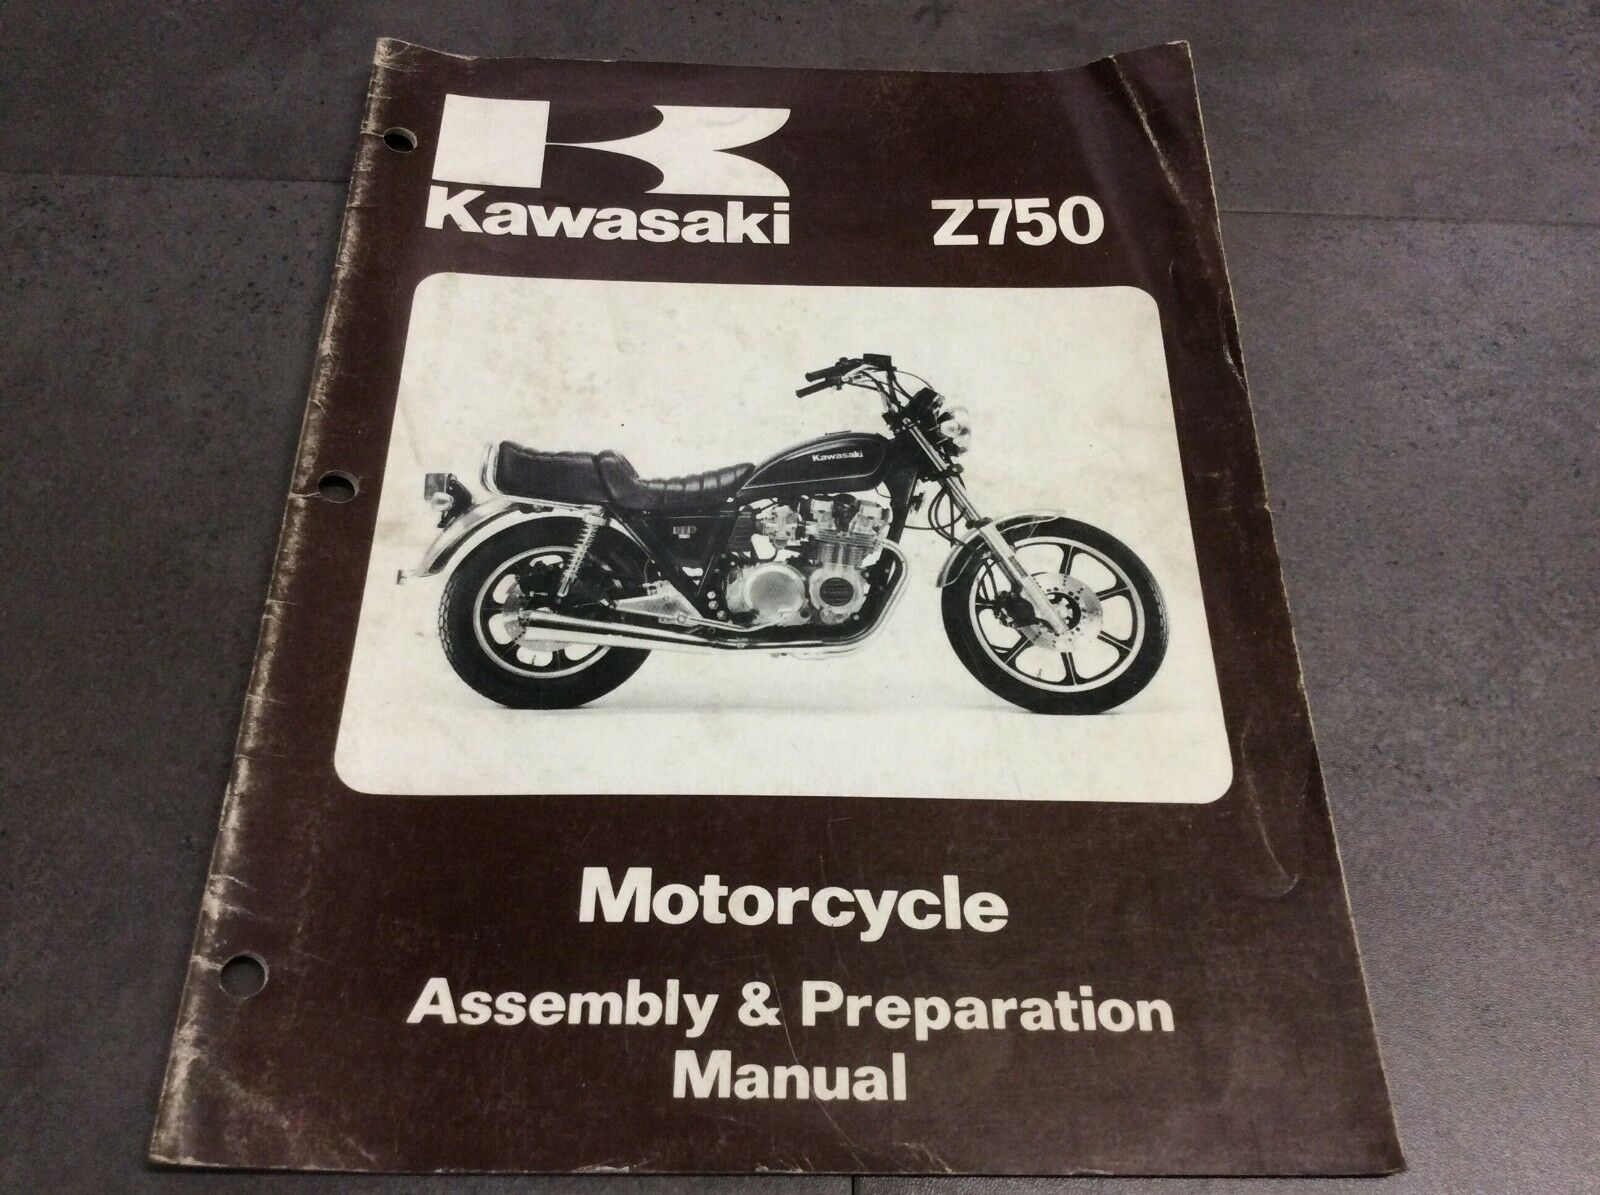 Genuine Kawasaki Z750-H1 Assembly & Preparation Manual 99939-1041-01 1 of  3Only 1 available ...